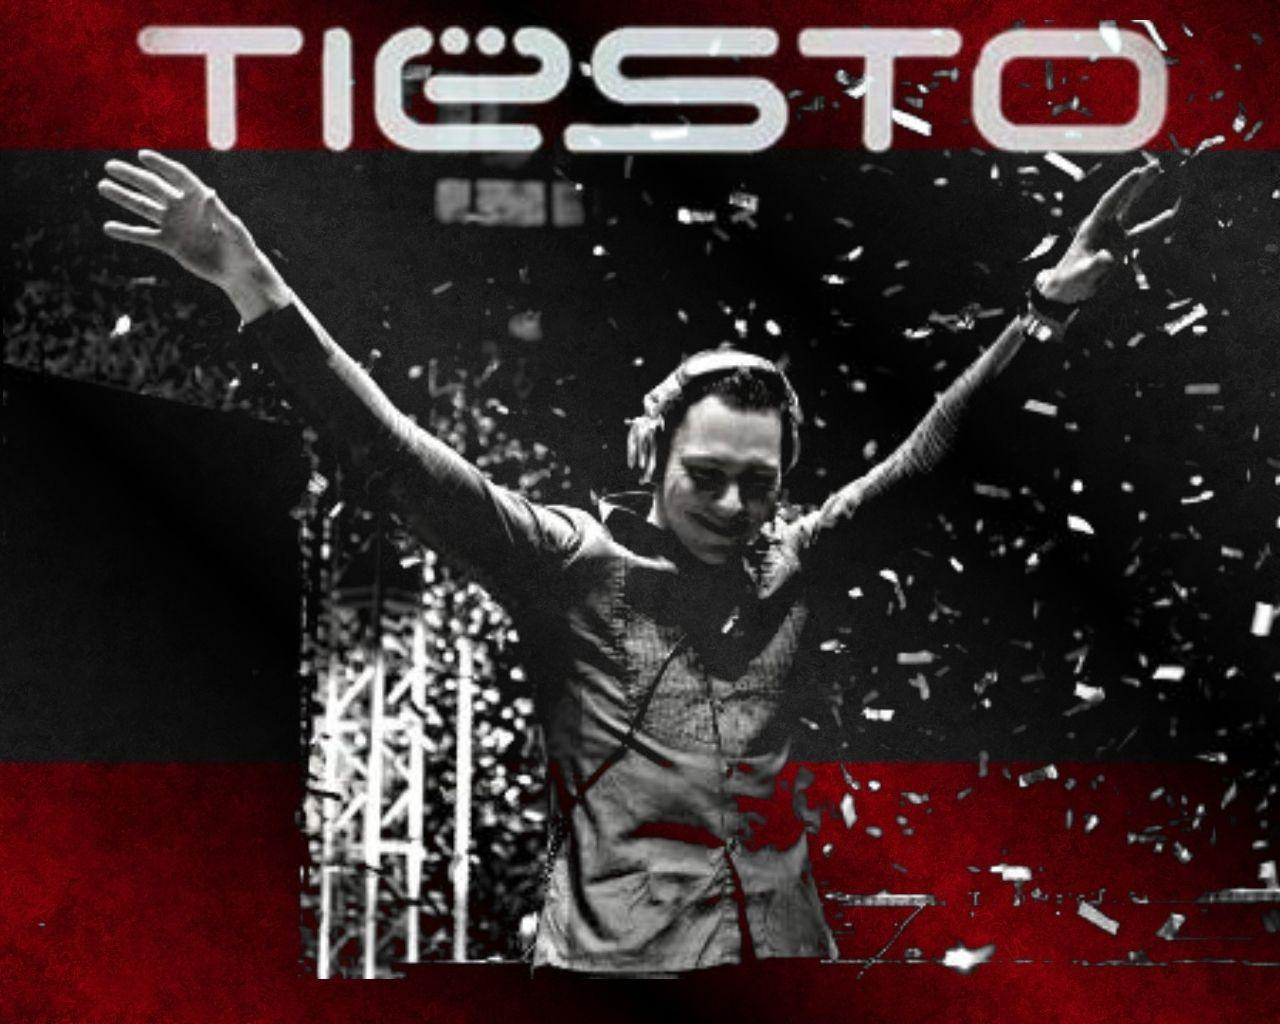 dj tiesto hd wallpapers - wallpaper cave